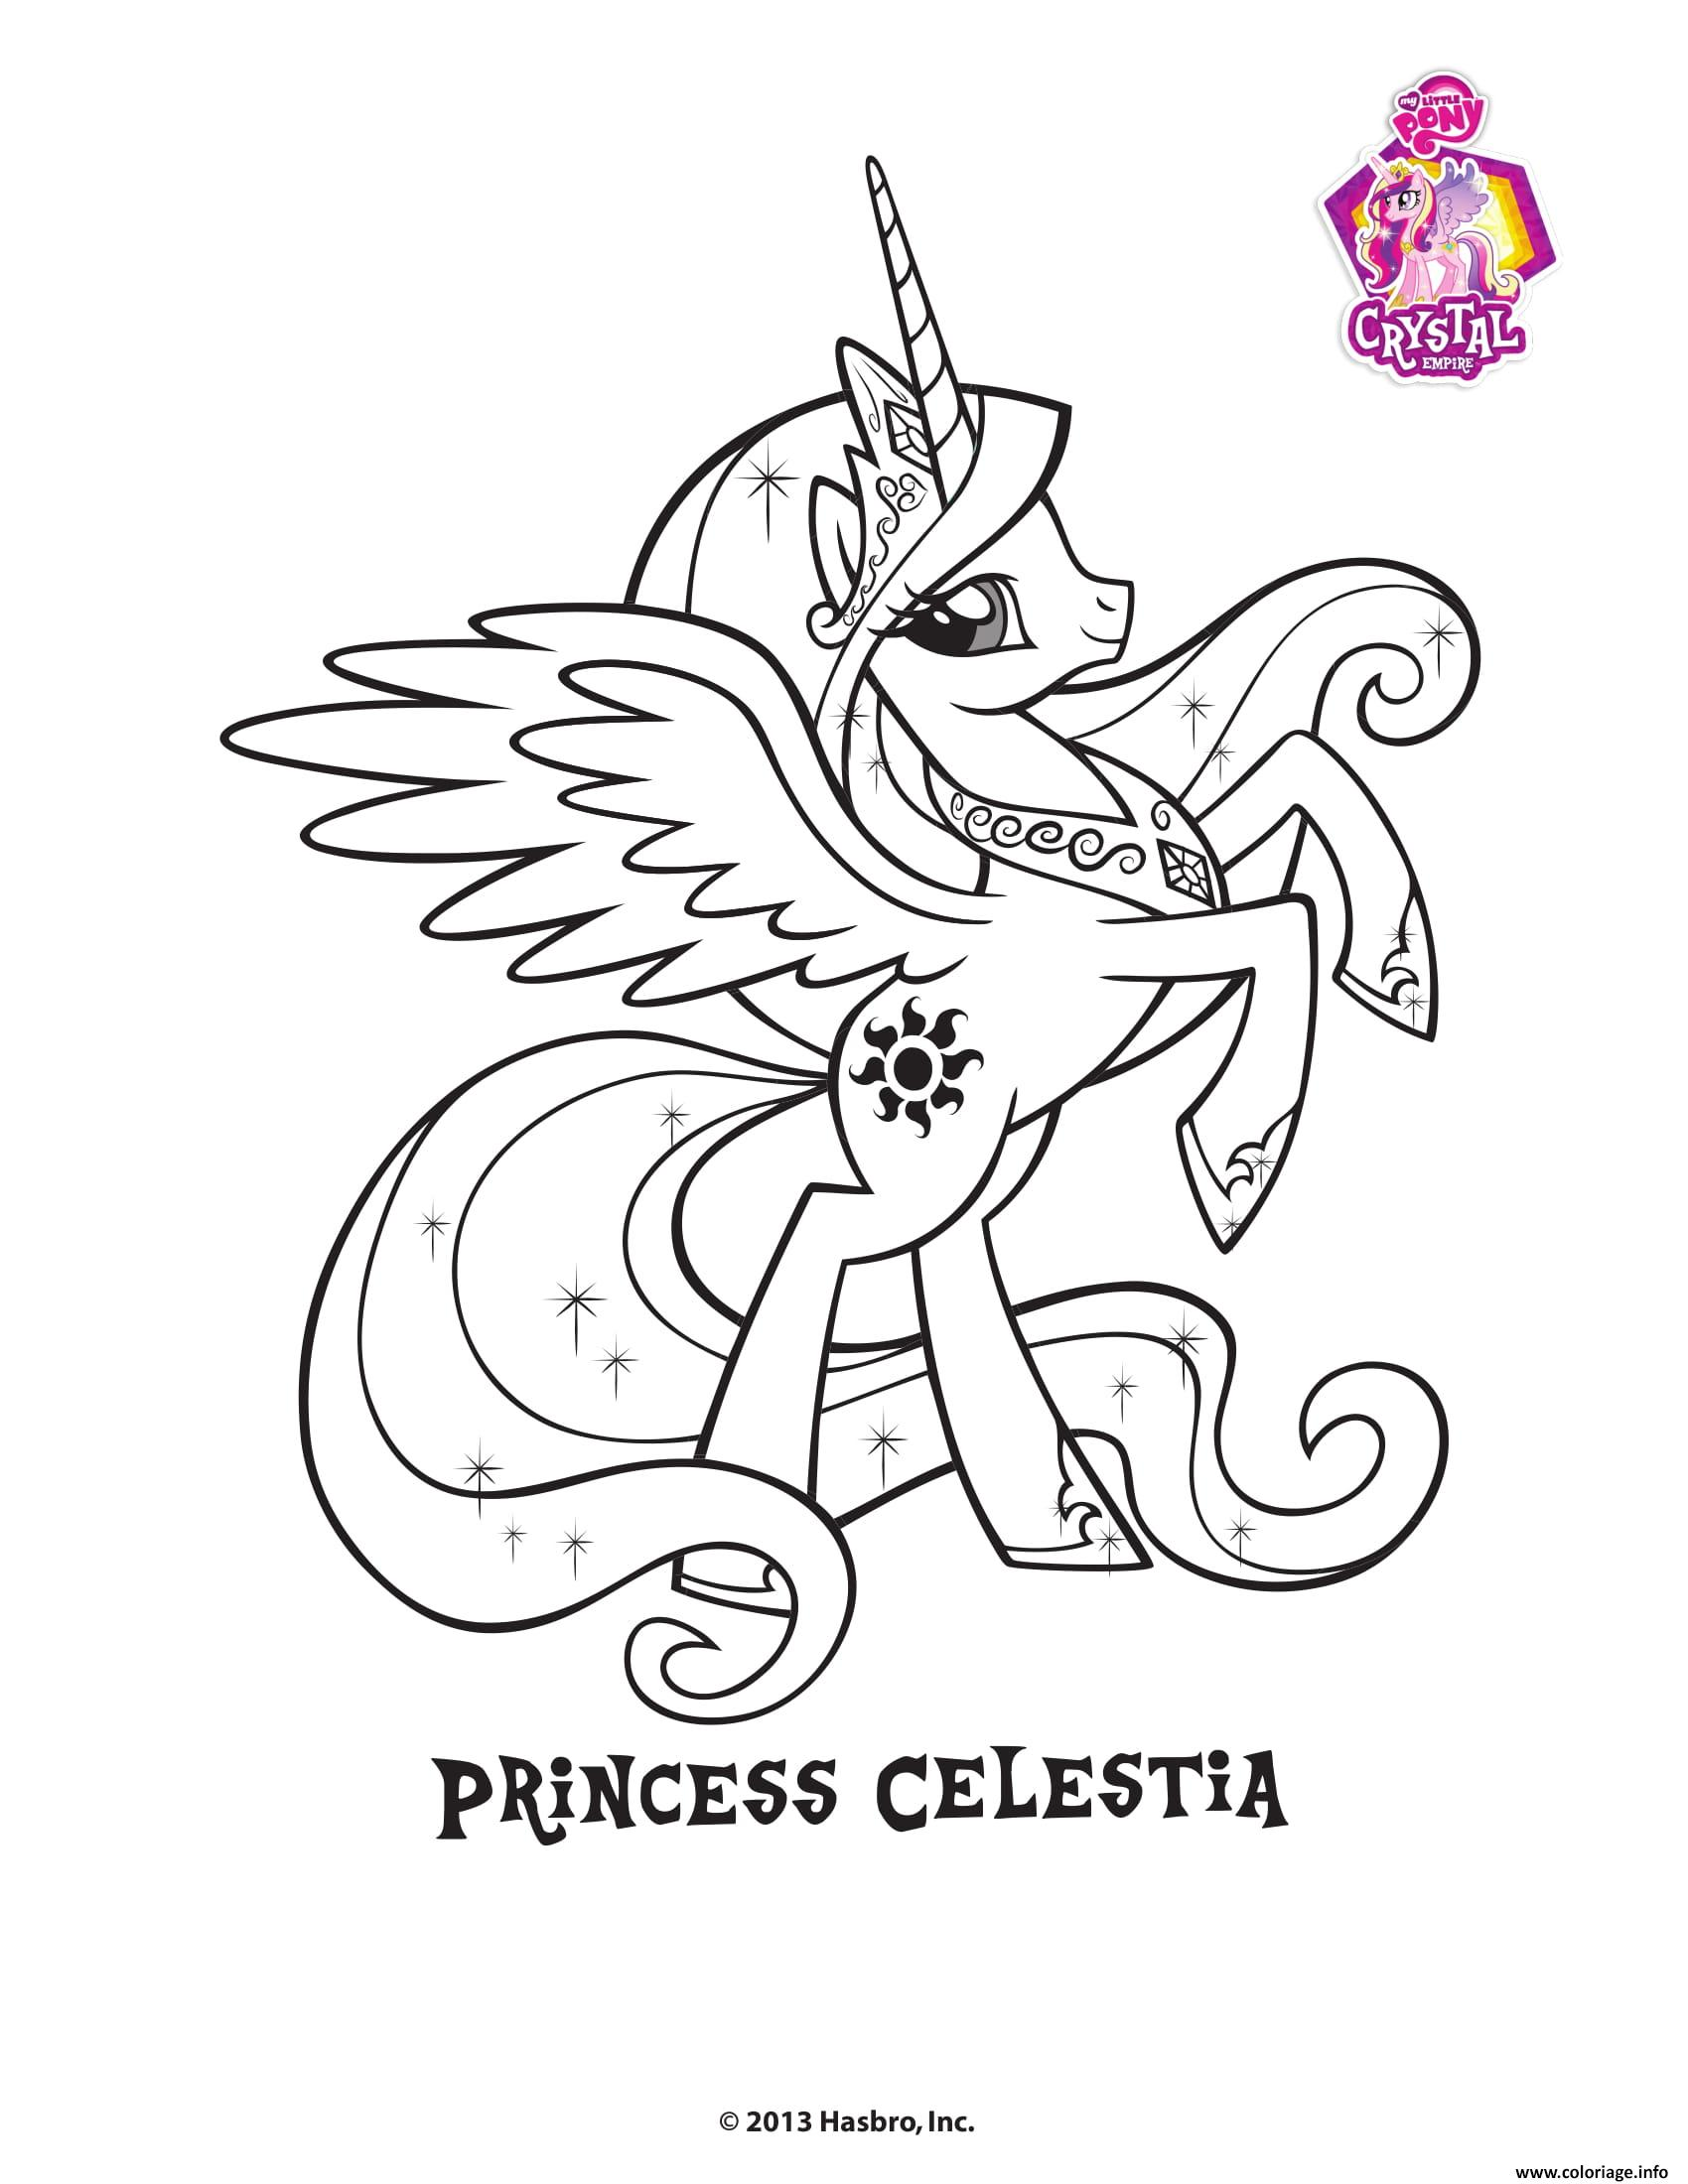 Cool Coloriage My Little Pony Princesse Cadance 78 Pour votre Coloriage Pages for Coloriage My Little Pony Princesse Cadance